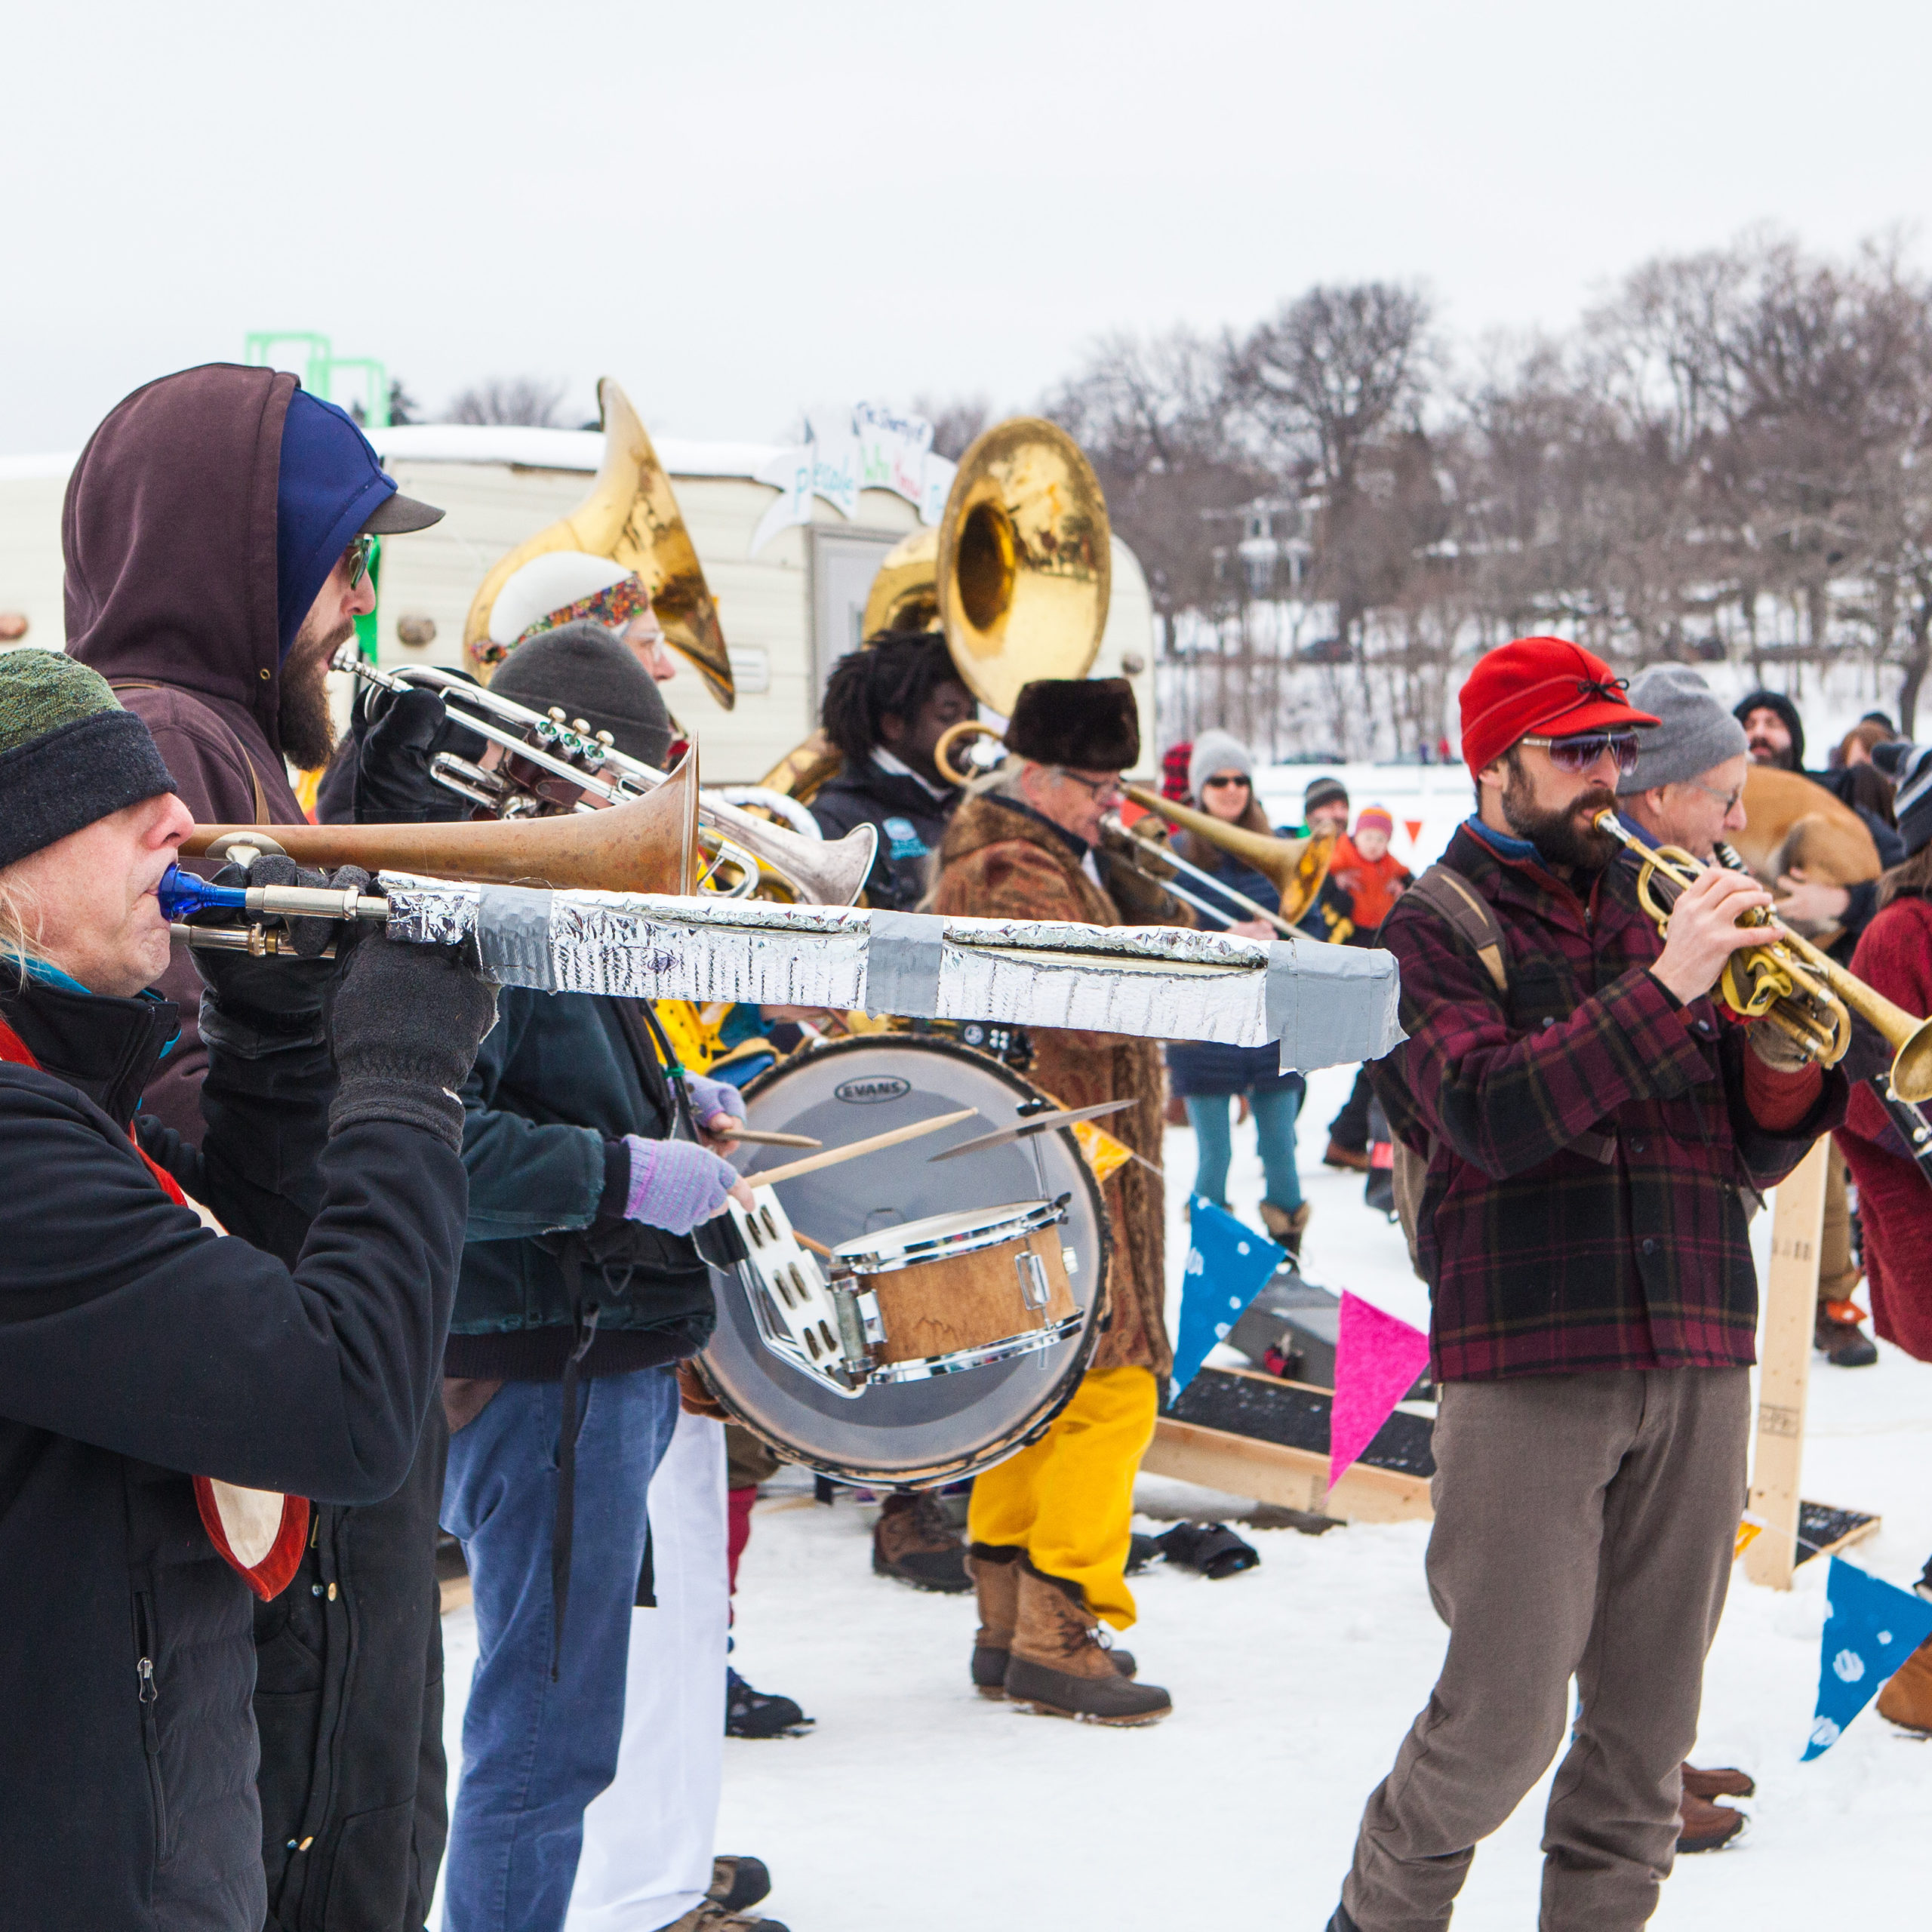 A brass band plays their horns amidst a colorful village on a frozen lake.